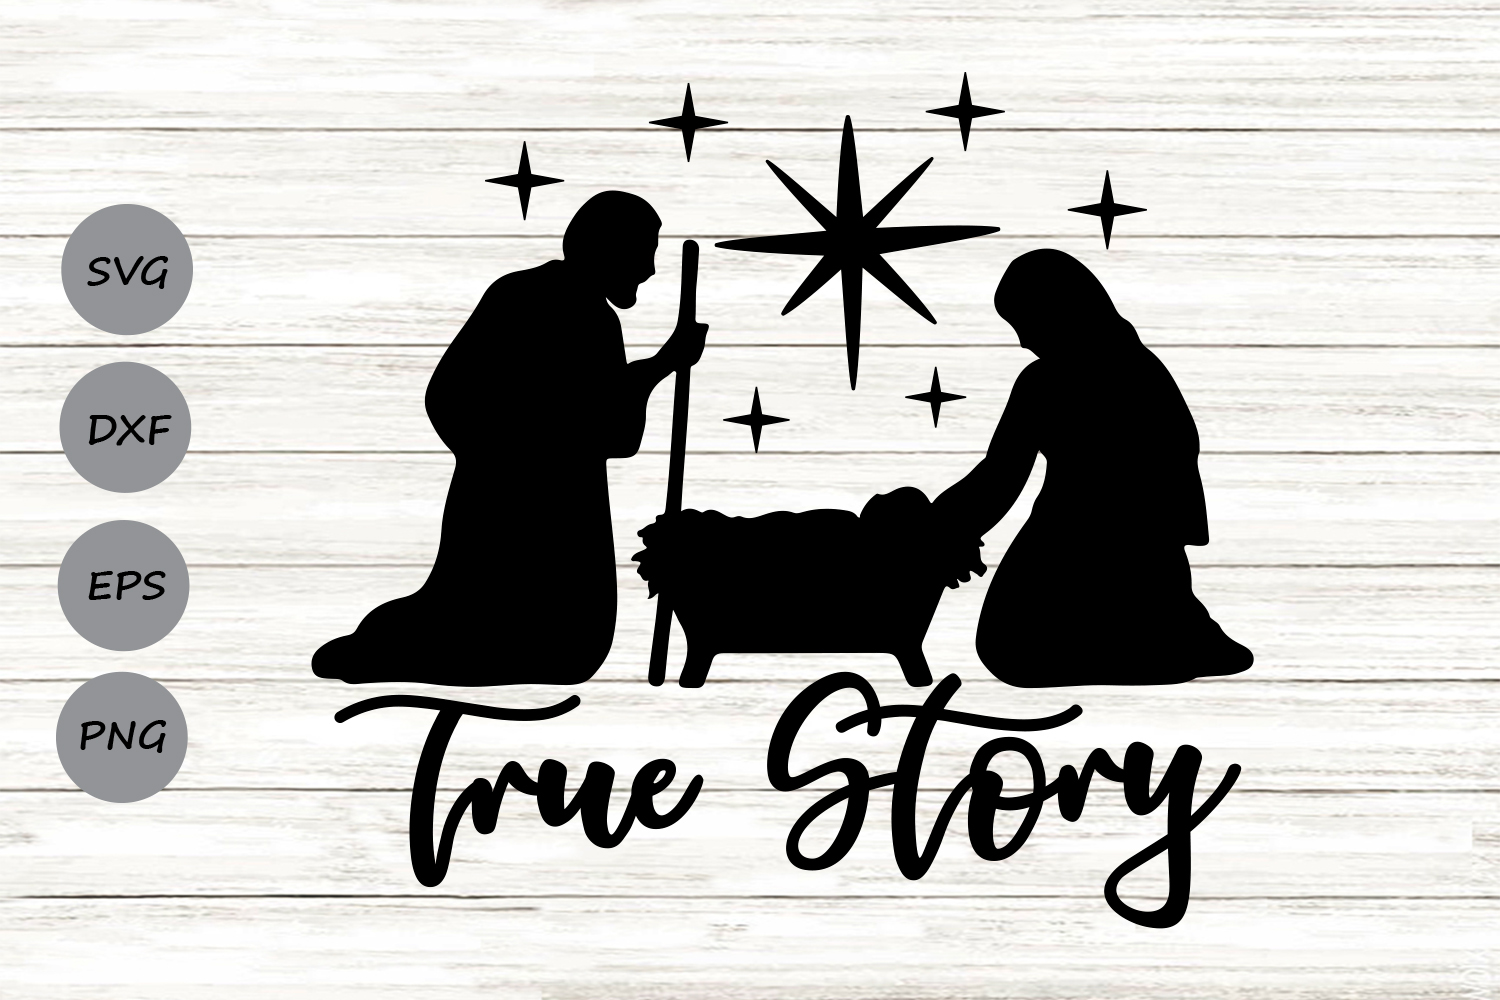 Download Free True Story Graphic By Cosmosfineart Creative Fabrica for Cricut Explore, Silhouette and other cutting machines.